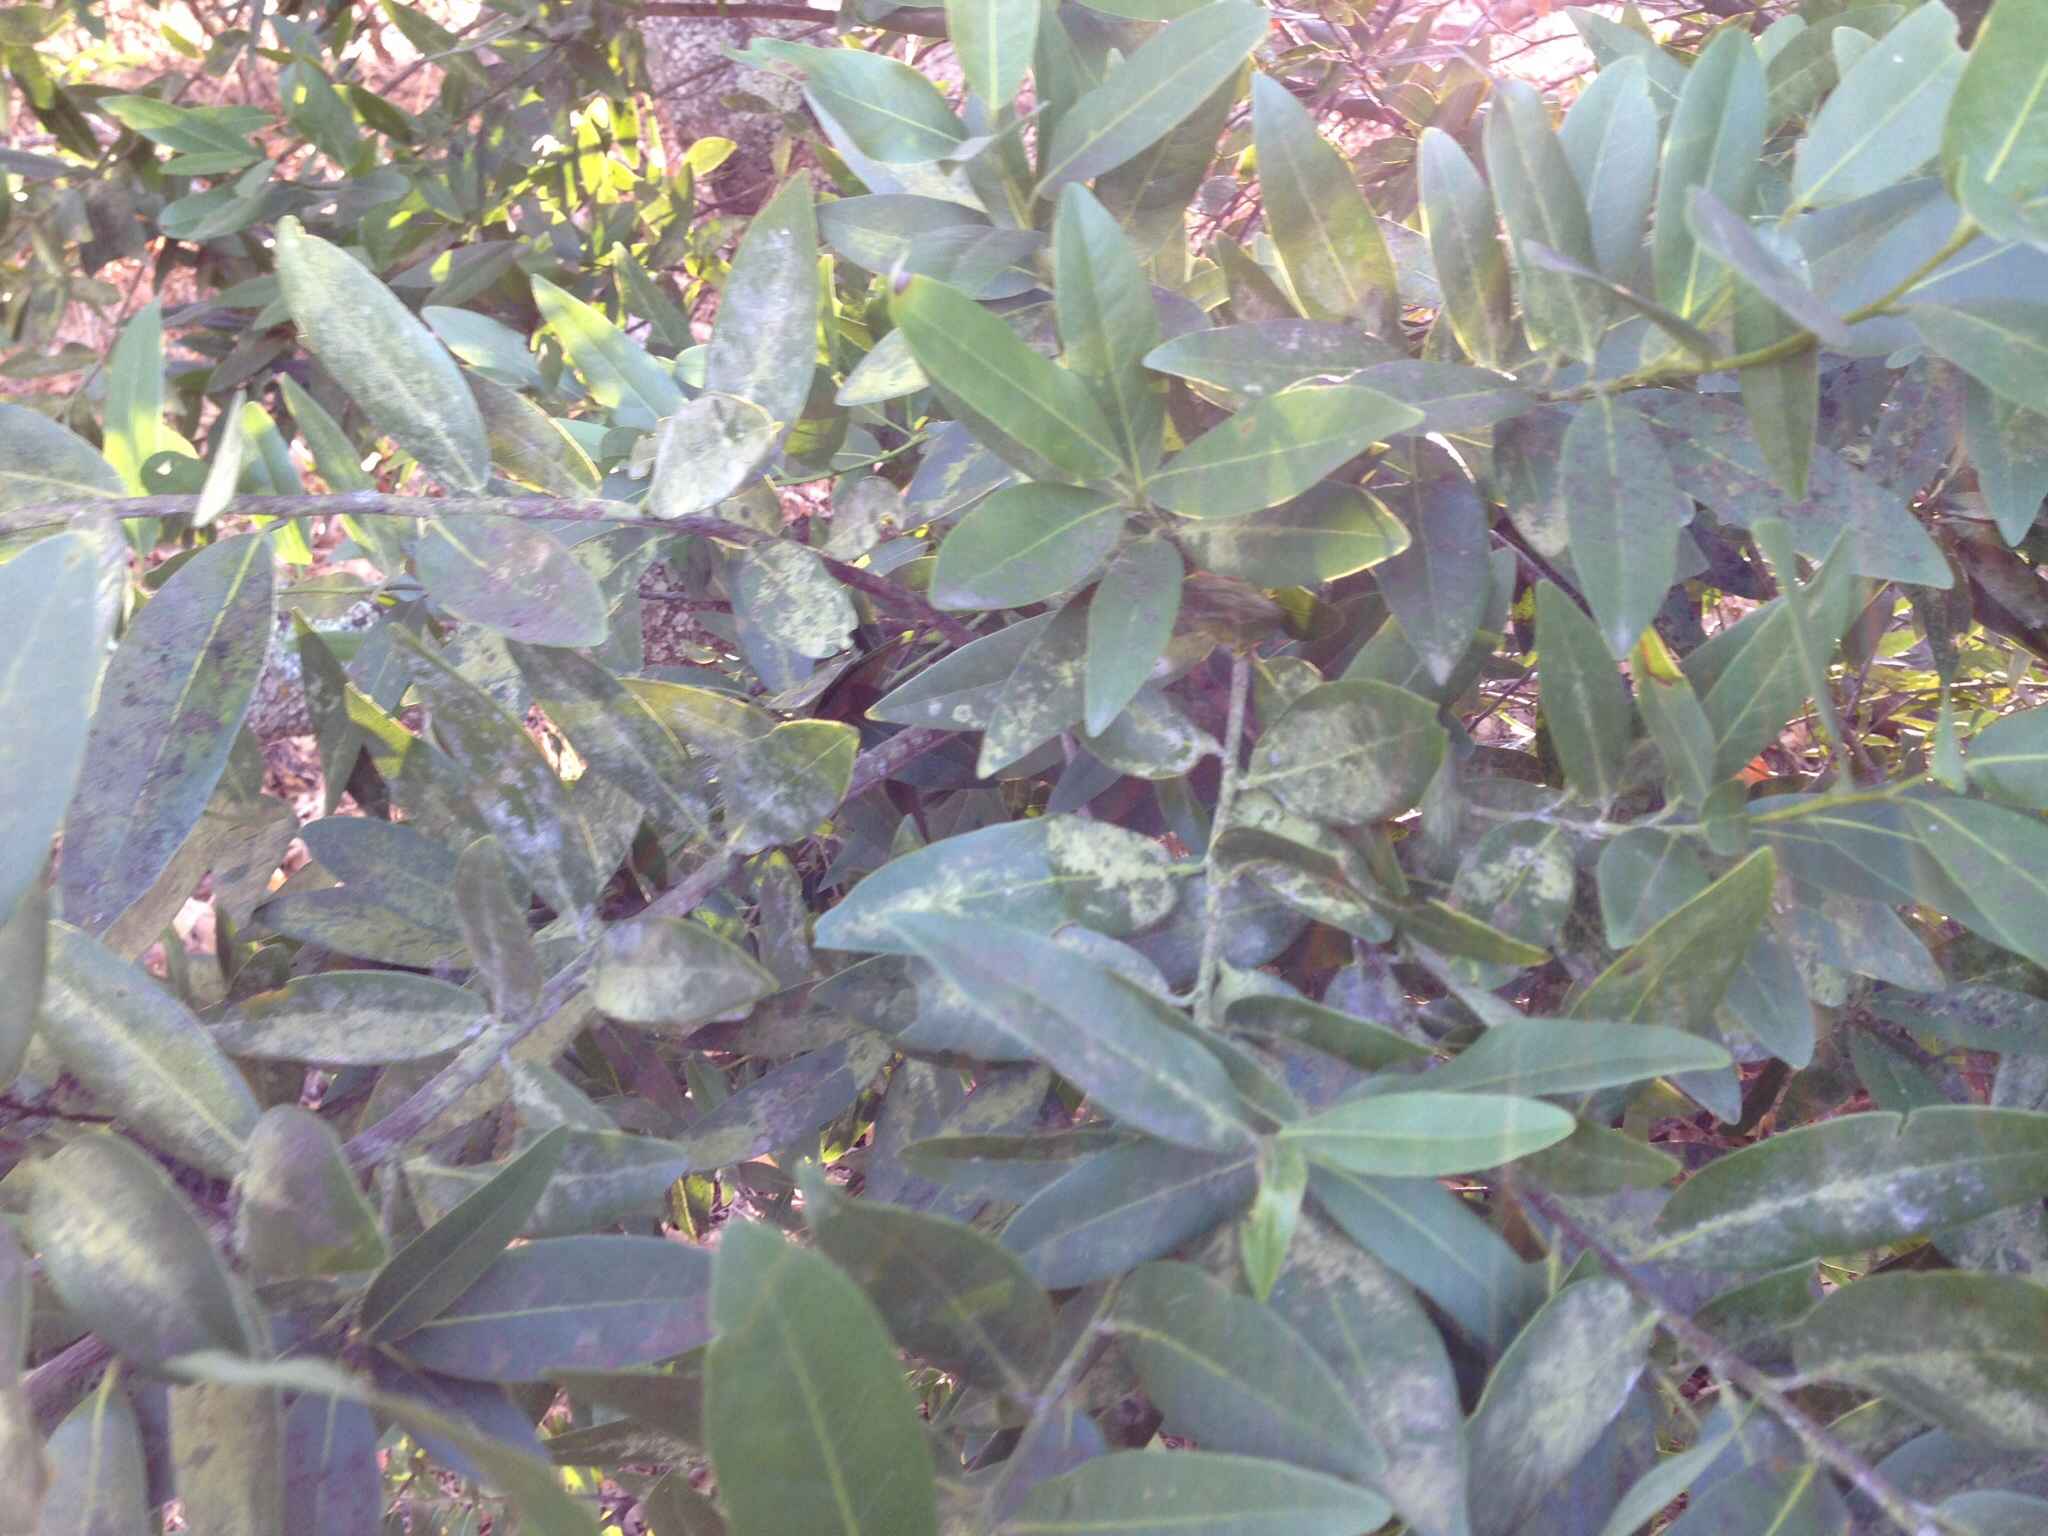 California bay laurel leaves covered with black moldy looking substance